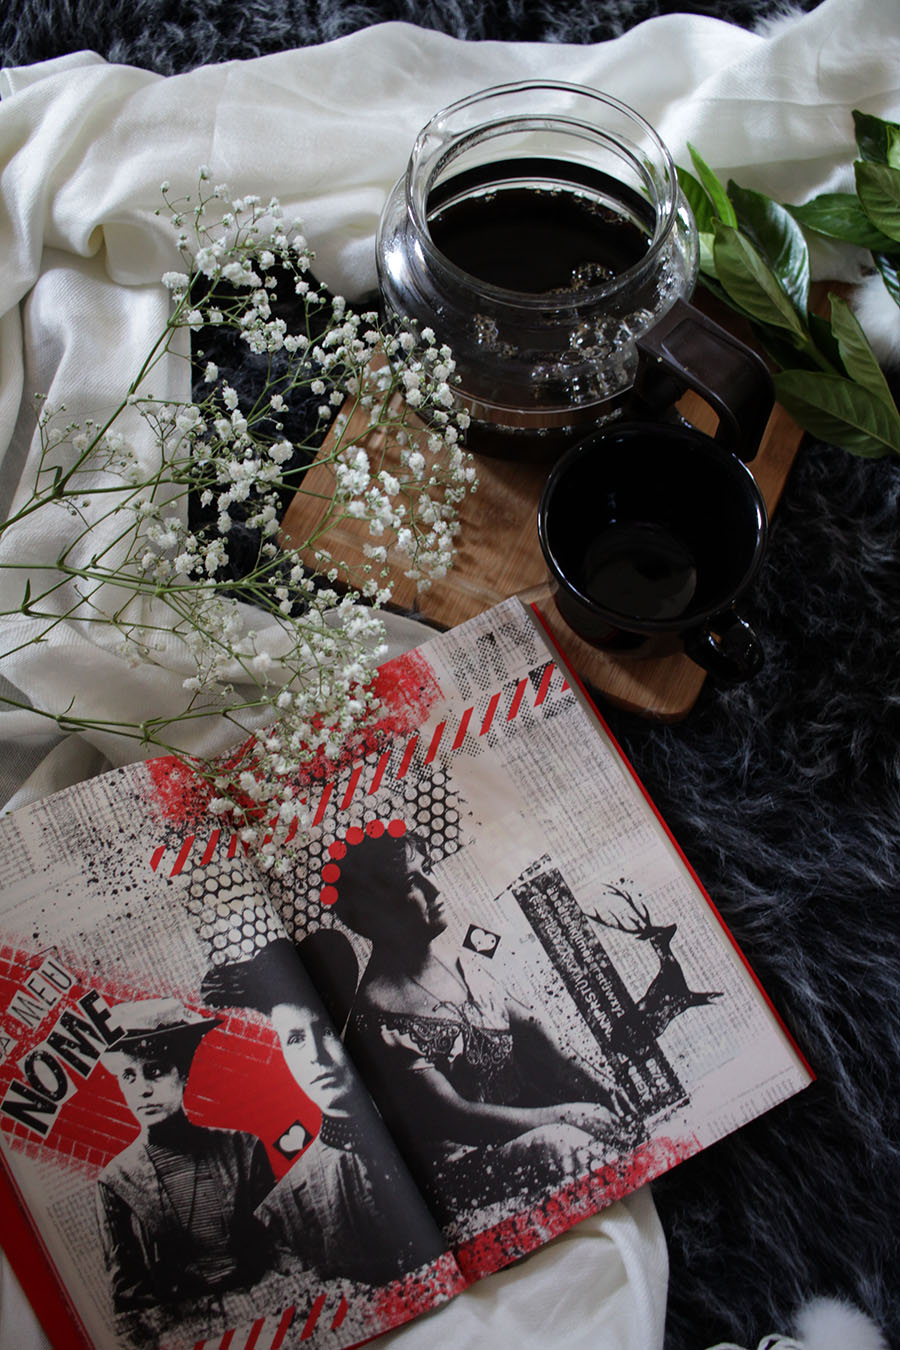 Inferior é o Car*lhø - Desconstruindo o machismo